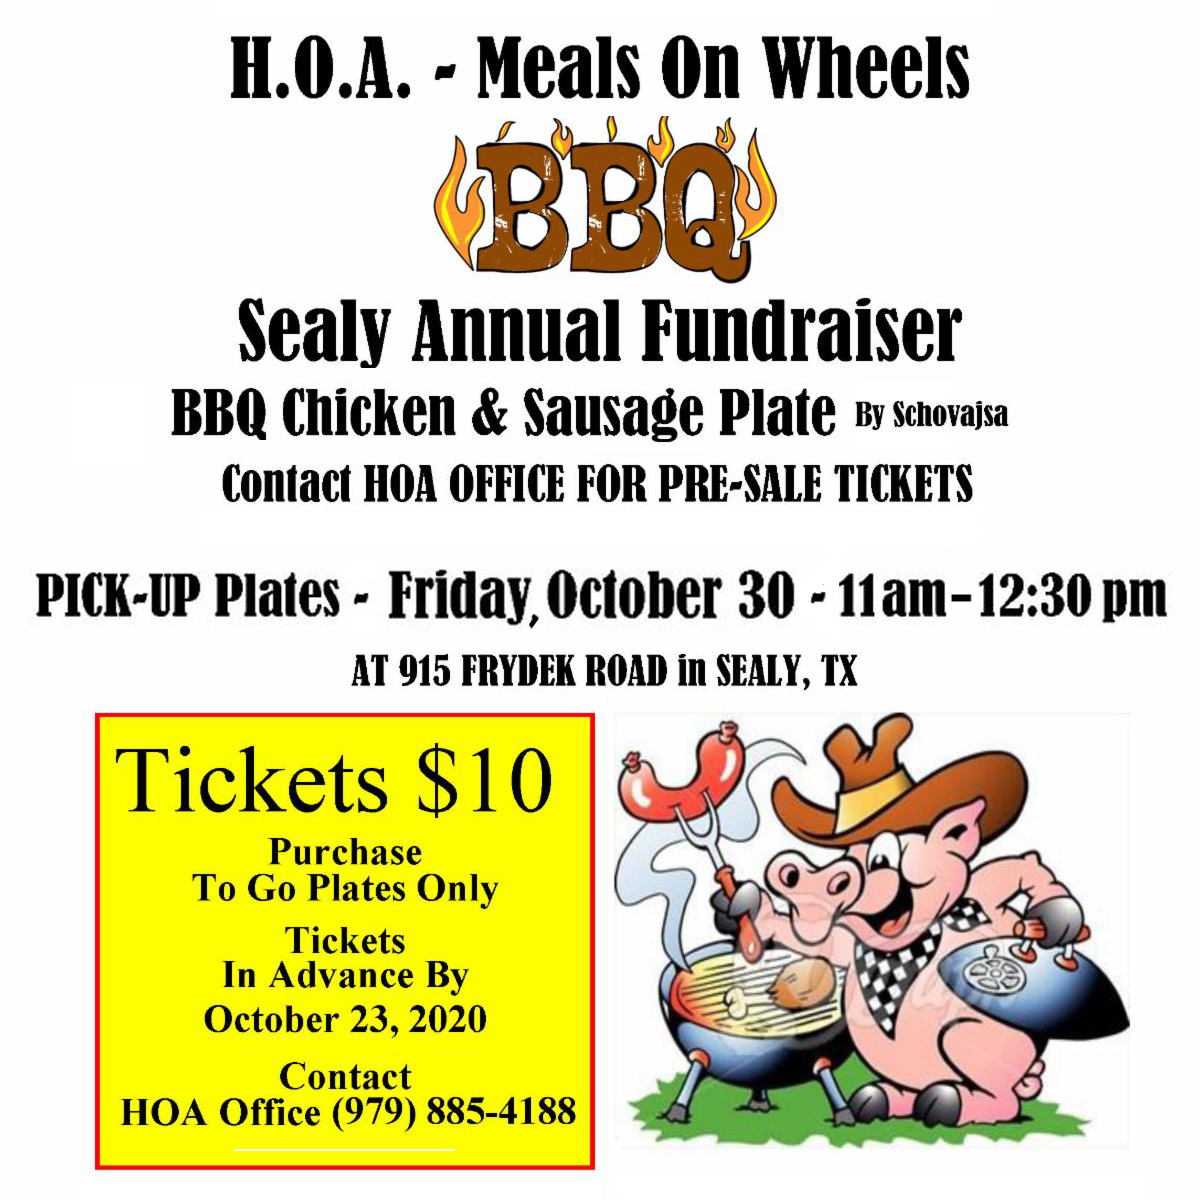 HOA Meals on Wheels BBQ Fundraiser